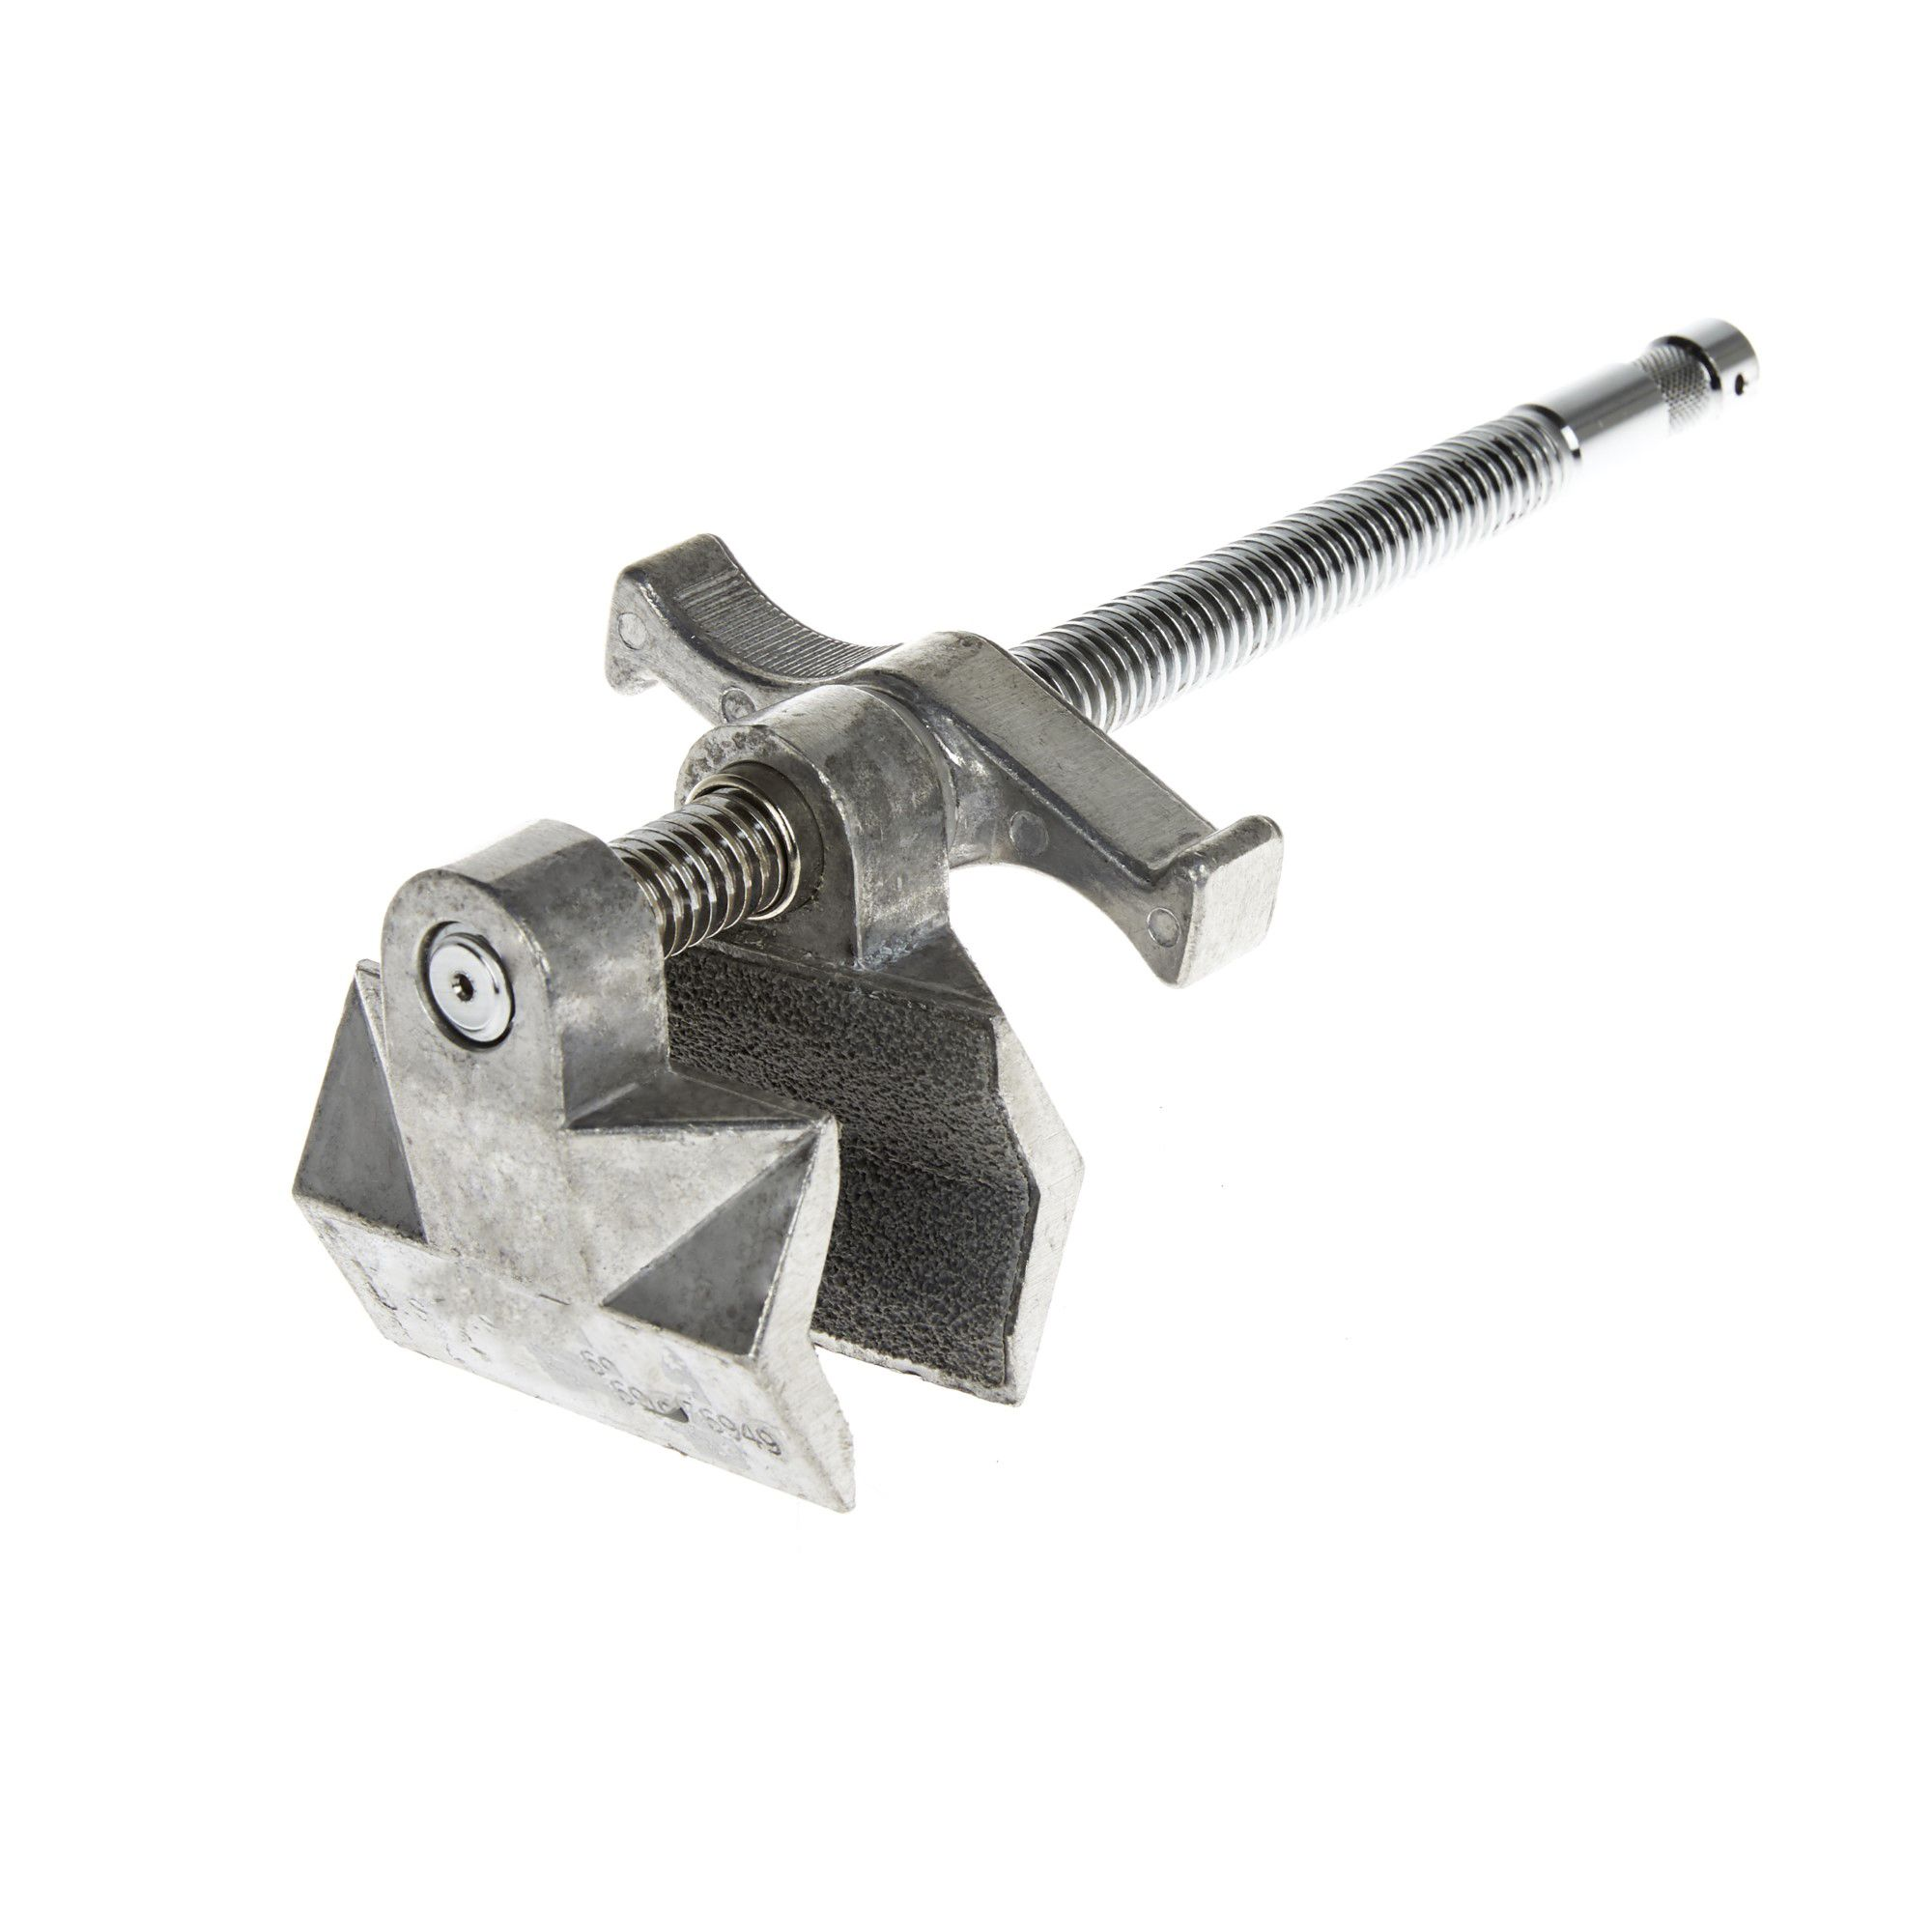 "Cardellini Clamp 2"" End Jaw/ Cyclone"